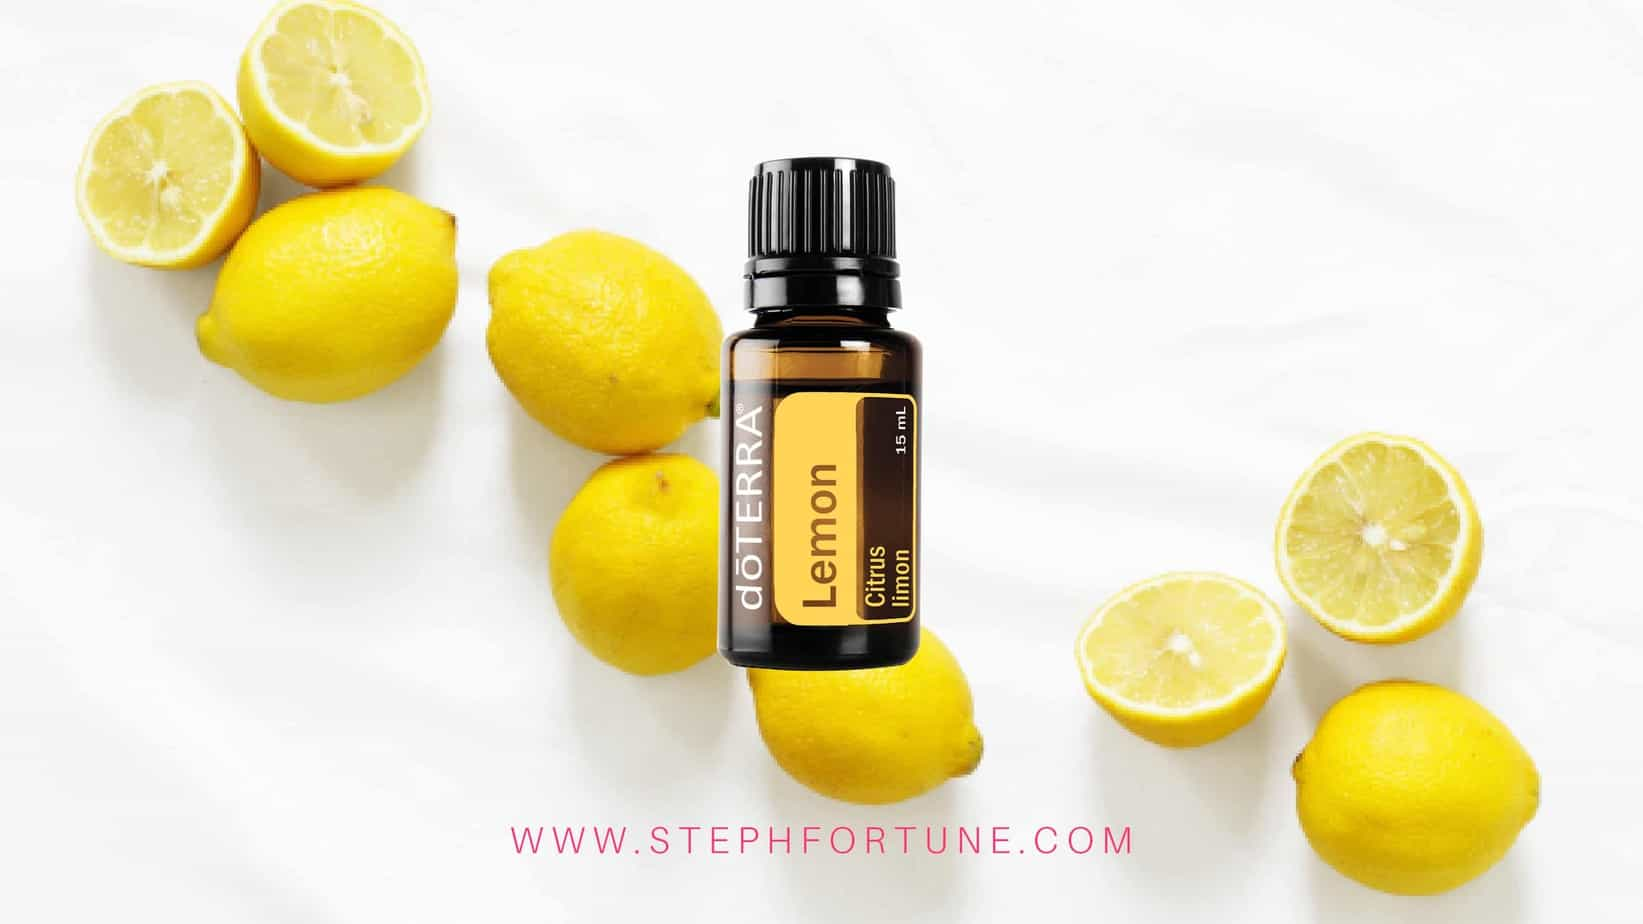 Everything you need to know about doterra lemon essential oil   doterra Lemon   Lemon Essential Oil   Lemon Usage   Lemon essential oil benefits